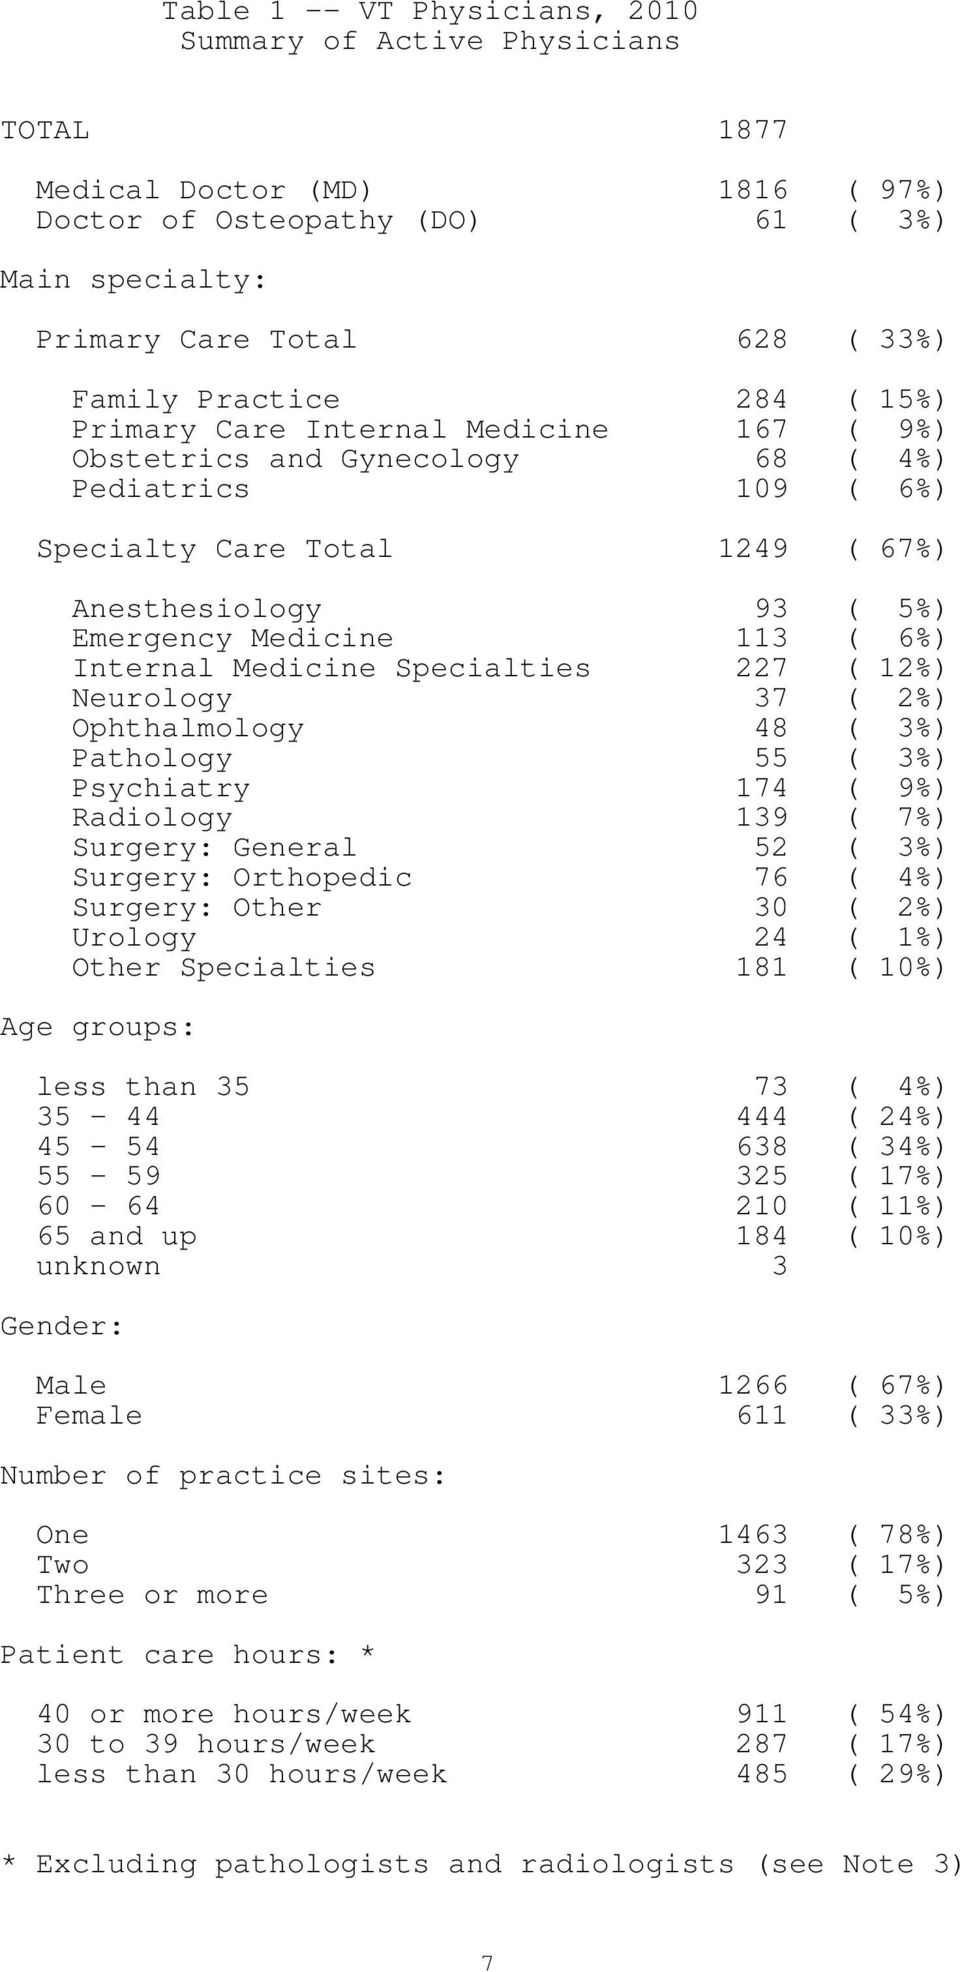 Internal Medicine Specialties 227 ( 12%) Neurology 37 ( 2%) Ophthalmology 48 ( 3%) Pathology 55 ( 3%) Psychiatry 174 ( 9%) Radiology 139 ( 7%) Surgery: General 52 ( 3%) Surgery: Orthopedic 76 ( 4%)